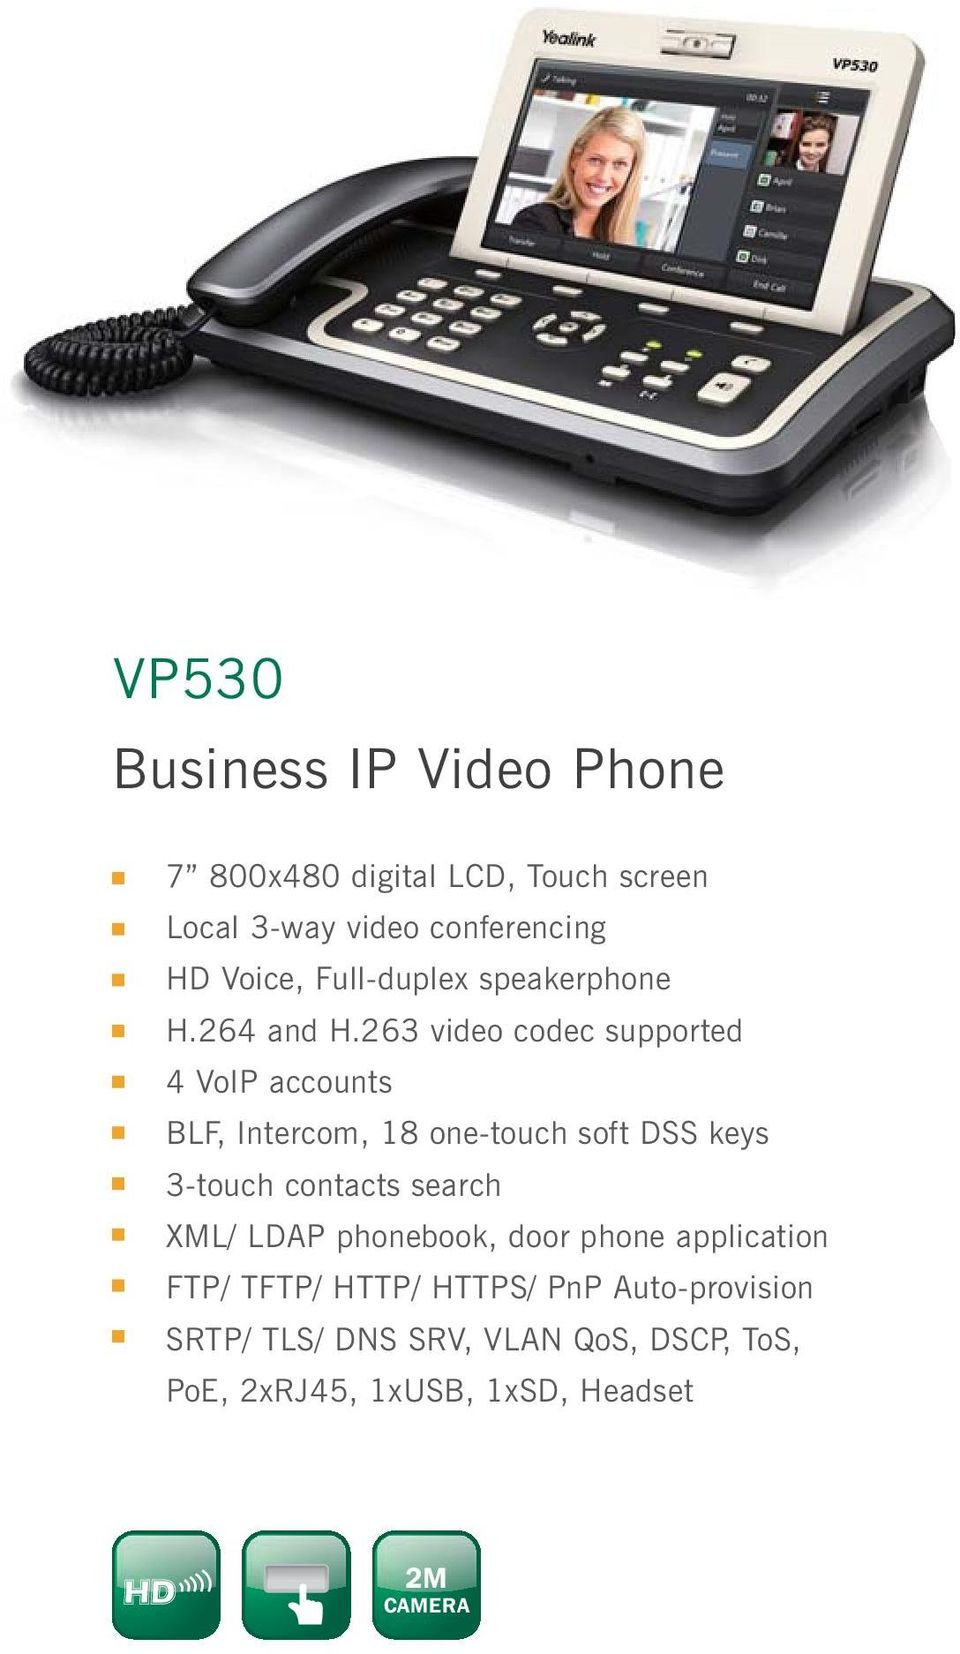 263 video codec supported 4 VoIP accounts BLF, Intercom, 18 one-touch soft DSS keys 3-touch contacts